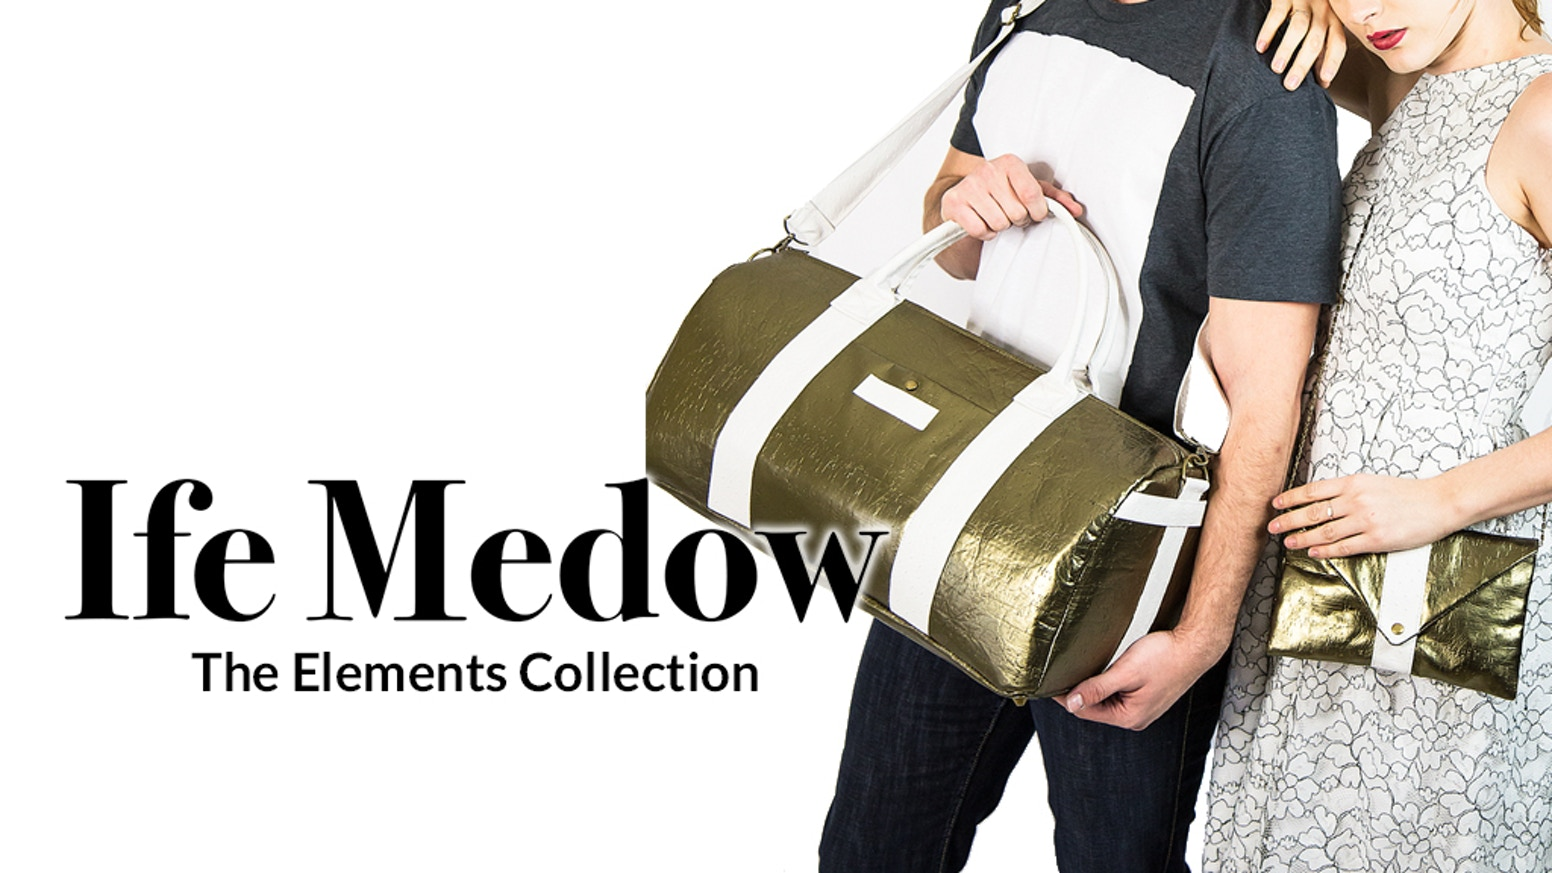 Ife Medow: Gender-neutral accessories & handbags with RFID protection. Crafted in the USA of sustainable materials.